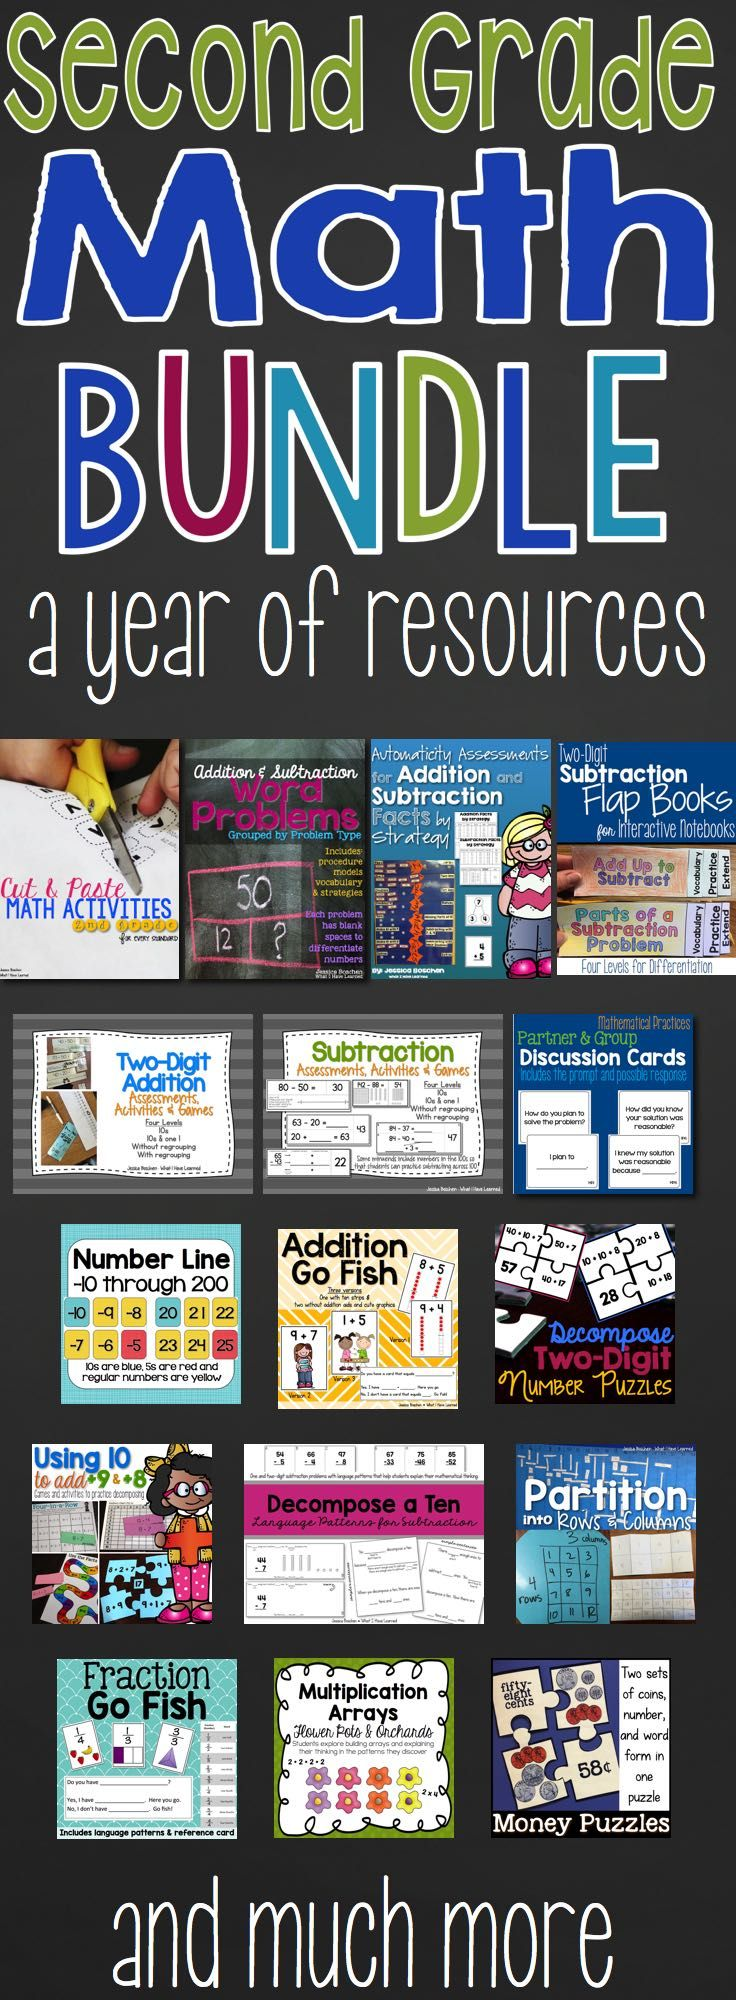 Second Grade Math BUNDLE is full of resources for your classroom. These are the same activities and games that I have used in my classroom for the past several years. Resources are arranged by season and unit and span the full year. Get them all at a severely discounted price. | Complete Math Curriculum | Common Core Math | Teaching Math | Elementary Education | Second Grade